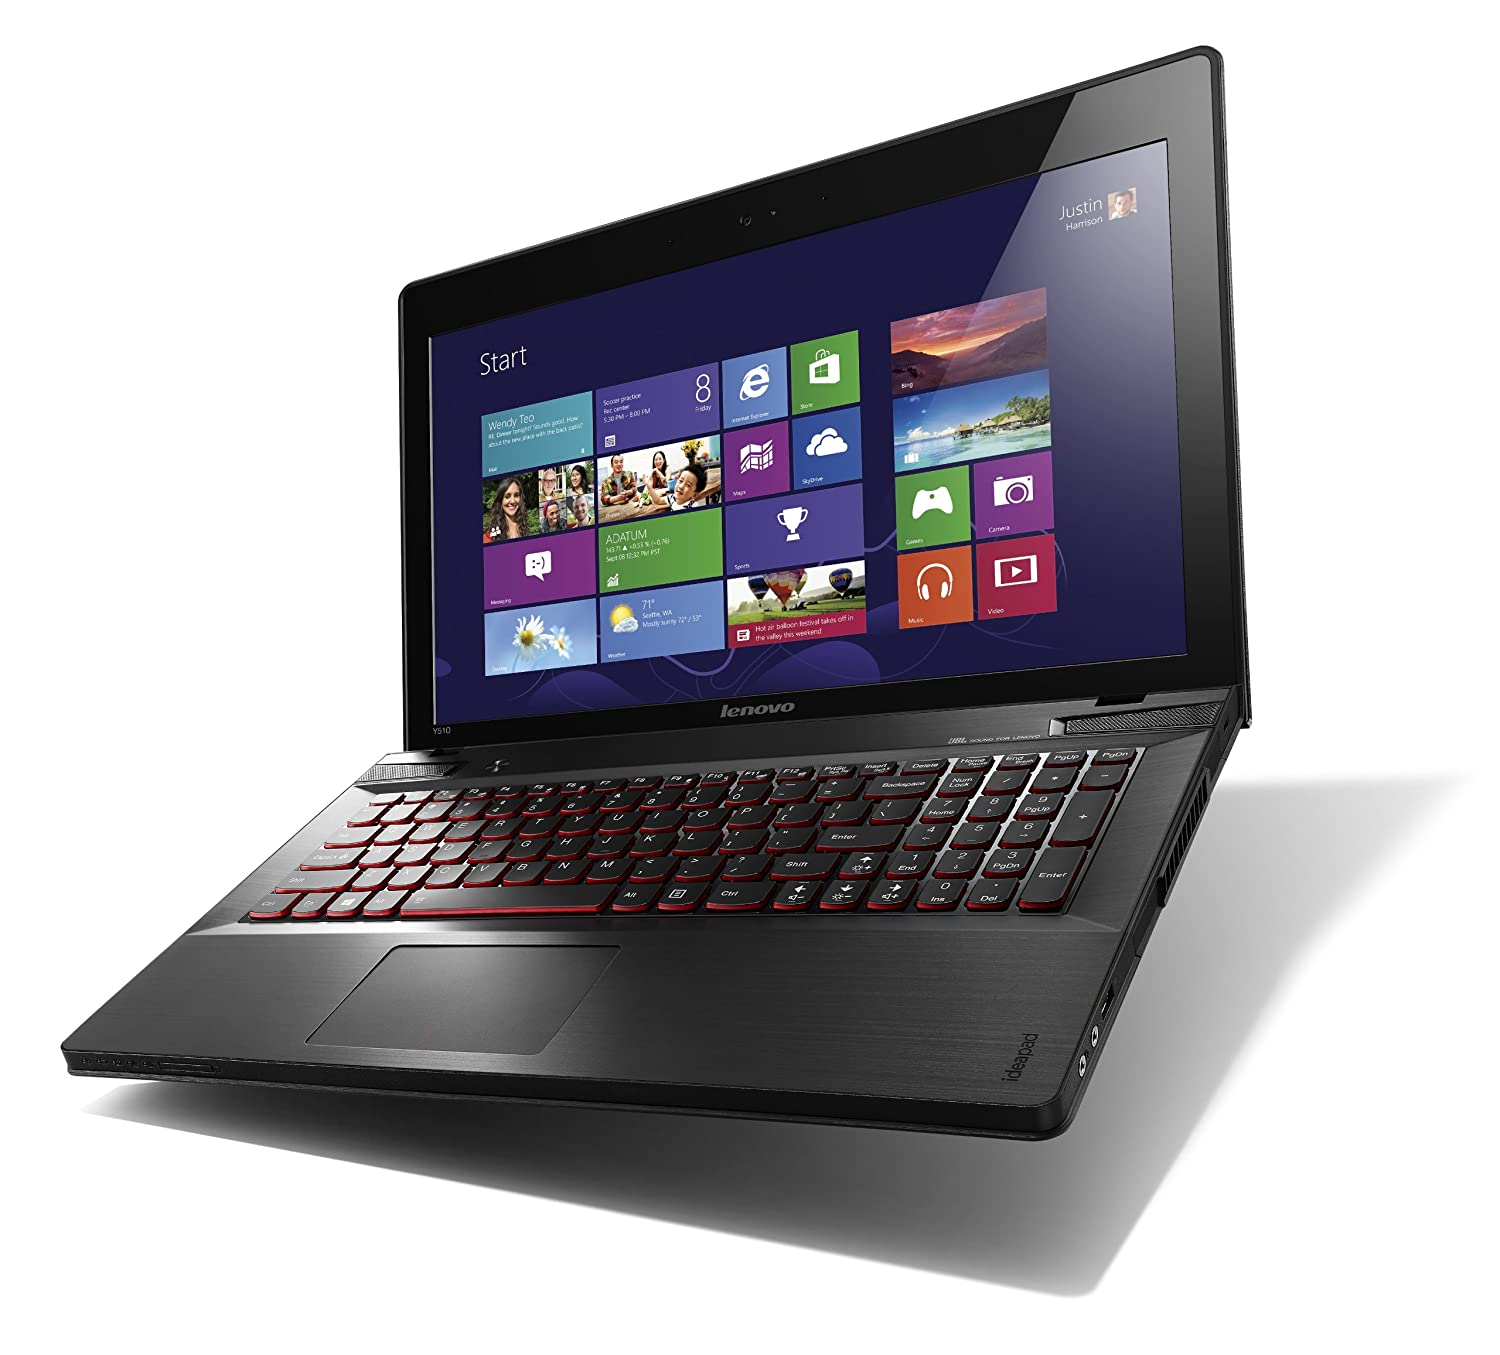 LENOVO IDEAPAD Y510P WINDOWS 7 DRIVER